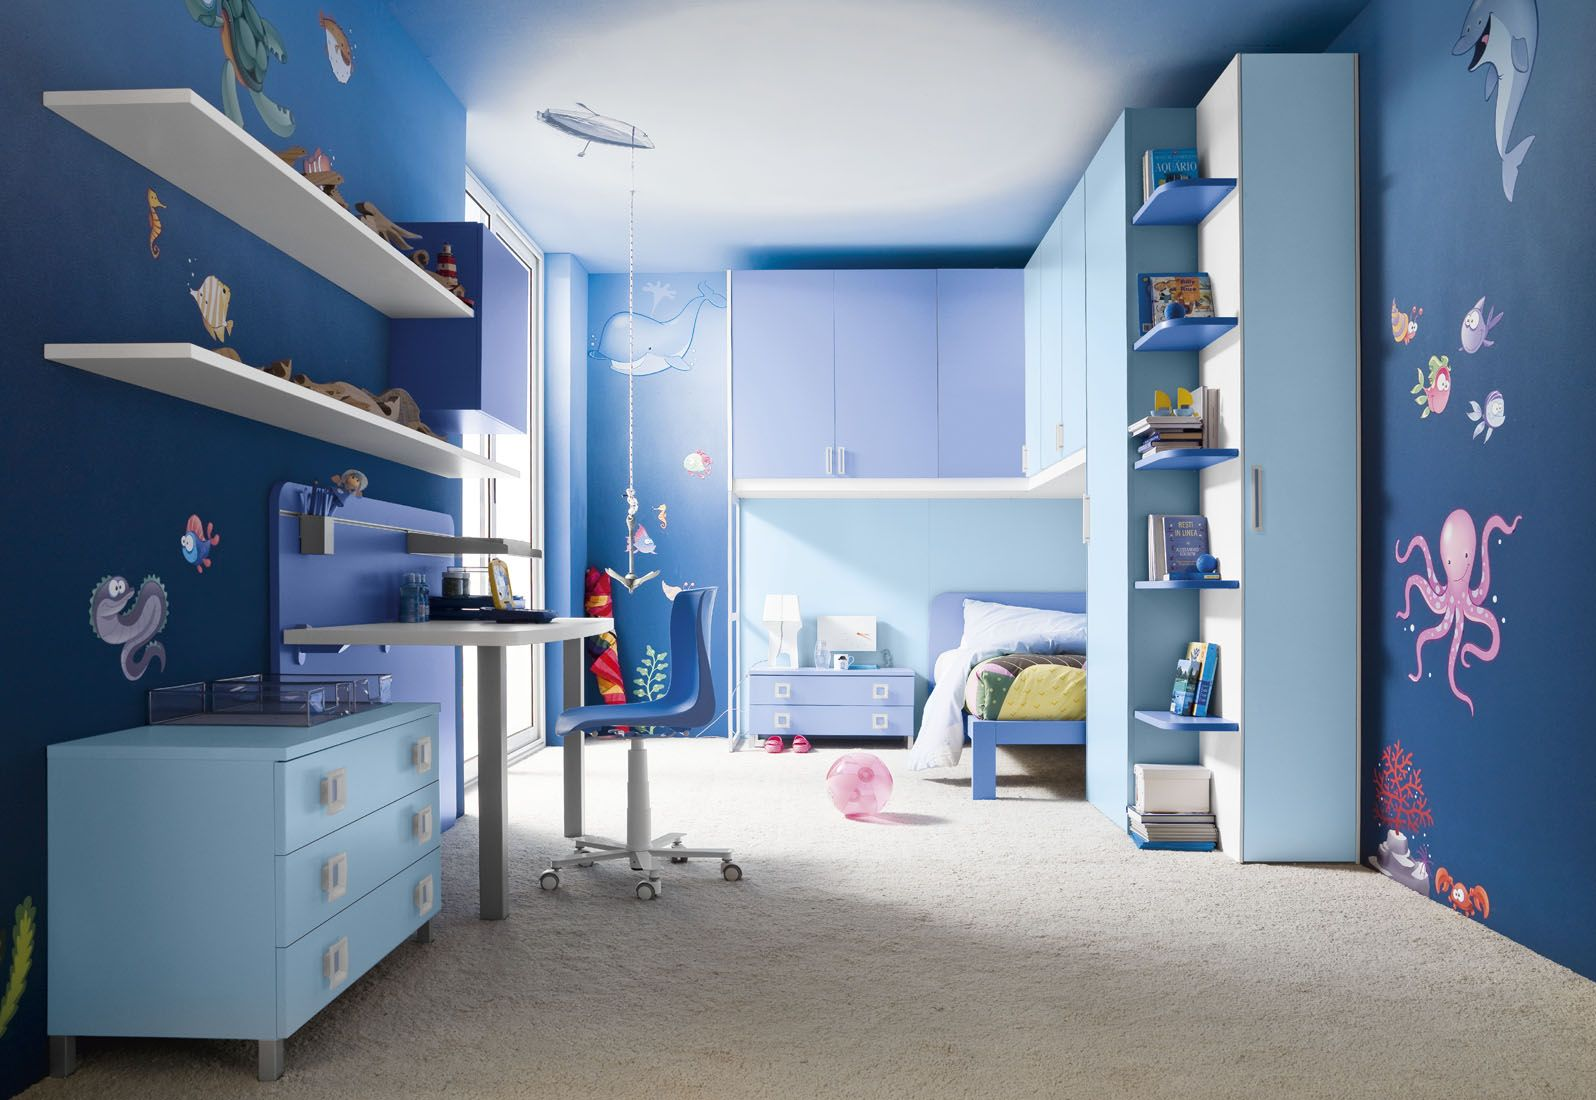 Dark blue bedrooms for boys - Kids Bedroom Underwater Fresco Ideas For Blue Boys Room Decor With Cool Modern Furniture With